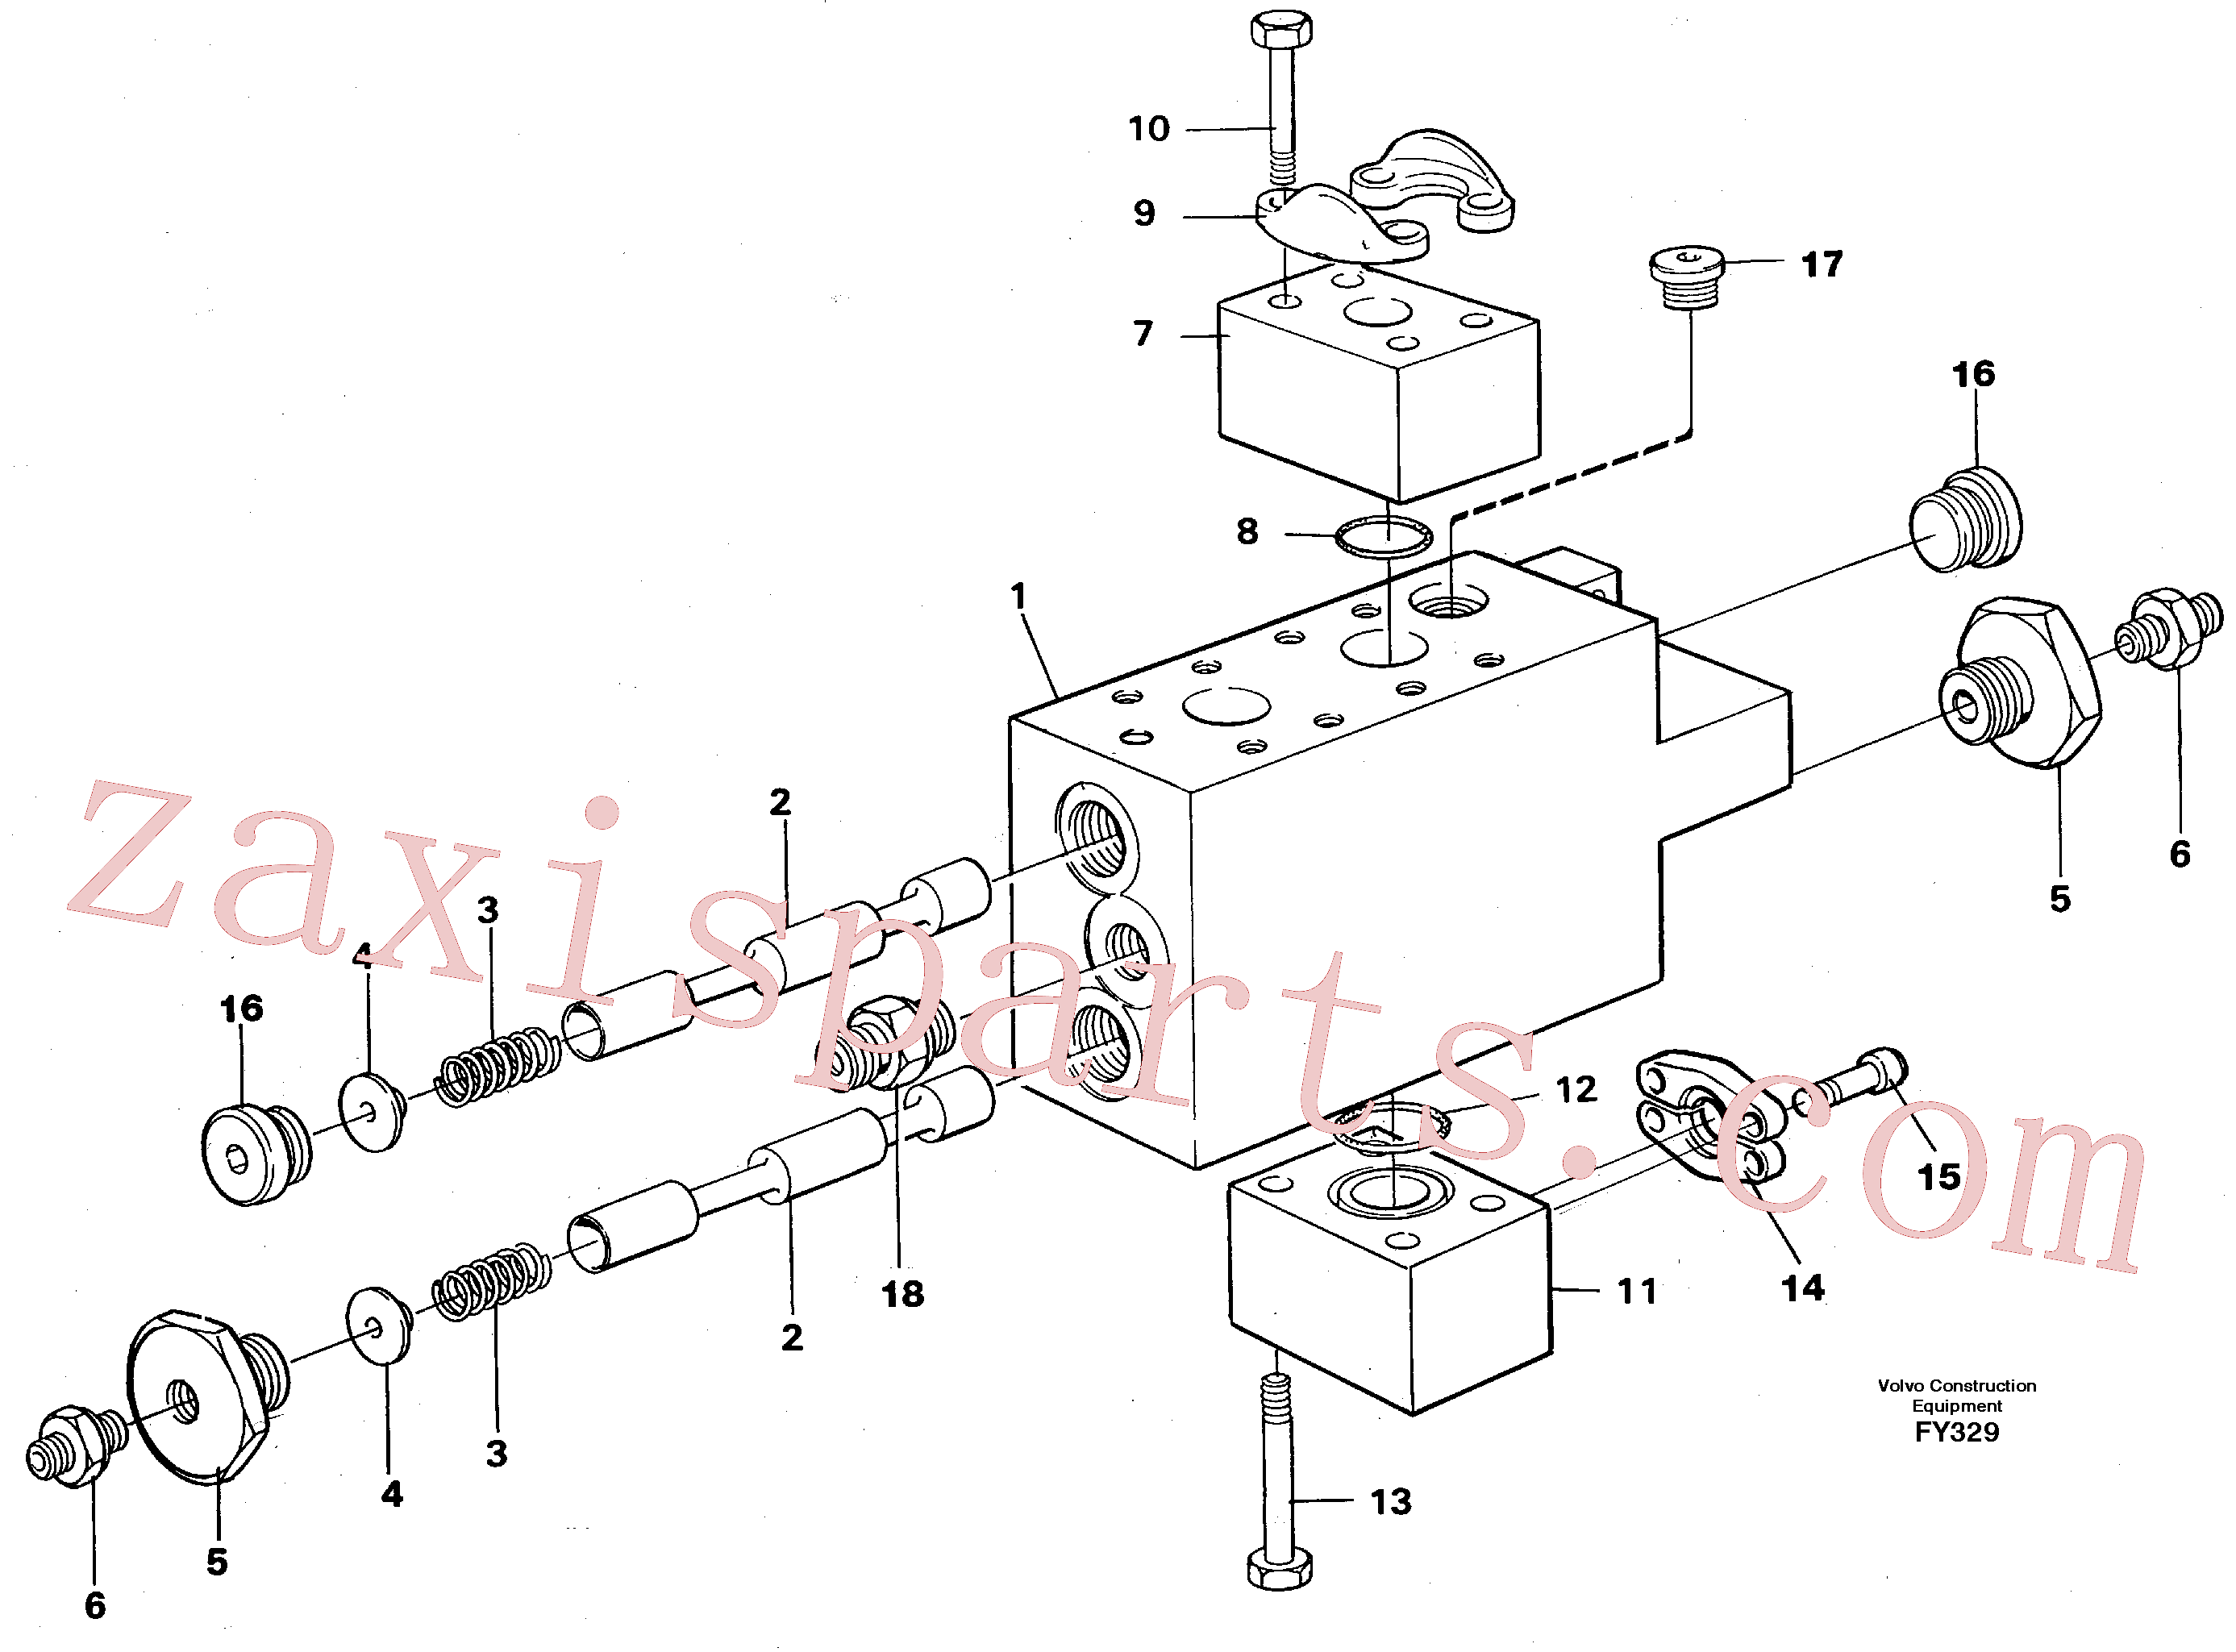 VOE14263818 for Volvo Operating valve(FY329 assembly)